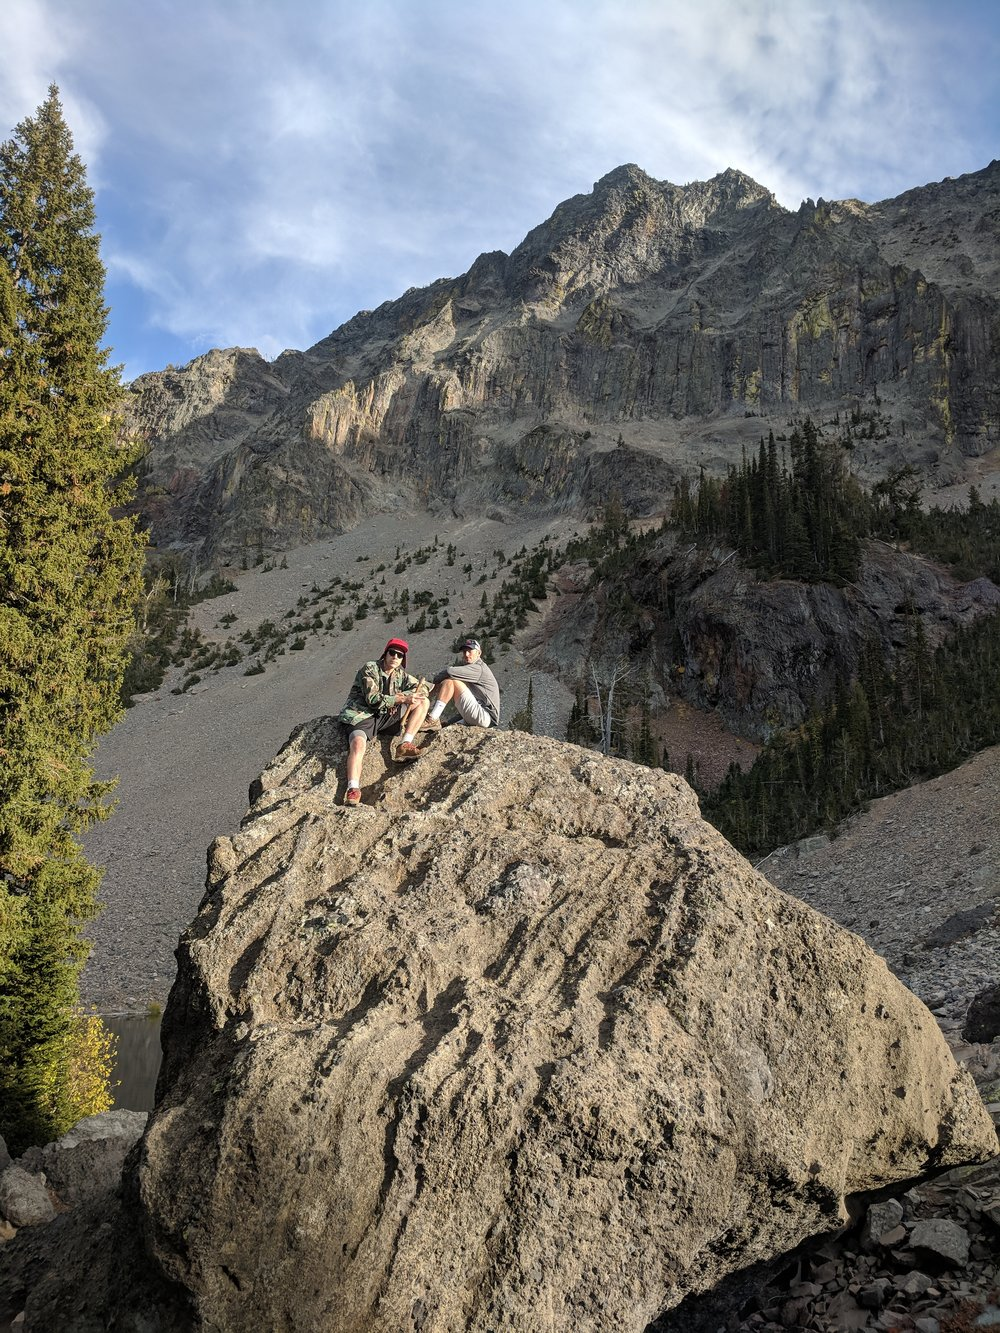 Chad and Will on top of the big rock